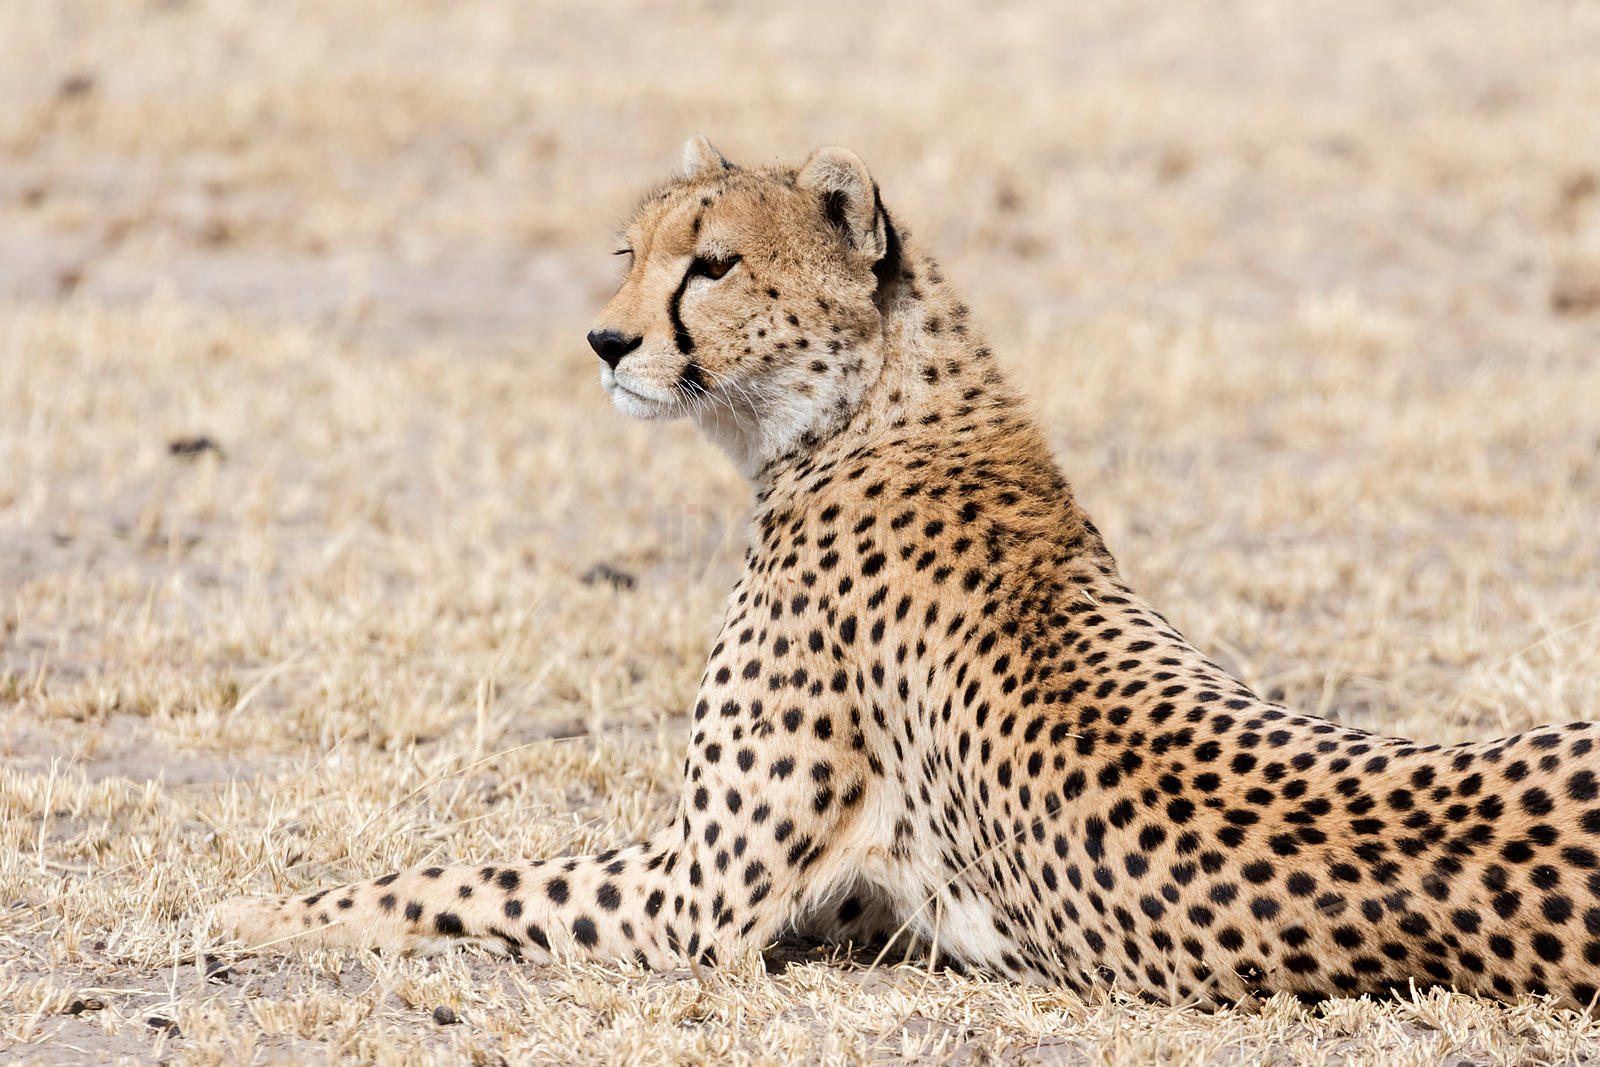 Portrait of a Cheetah on the Serengeti